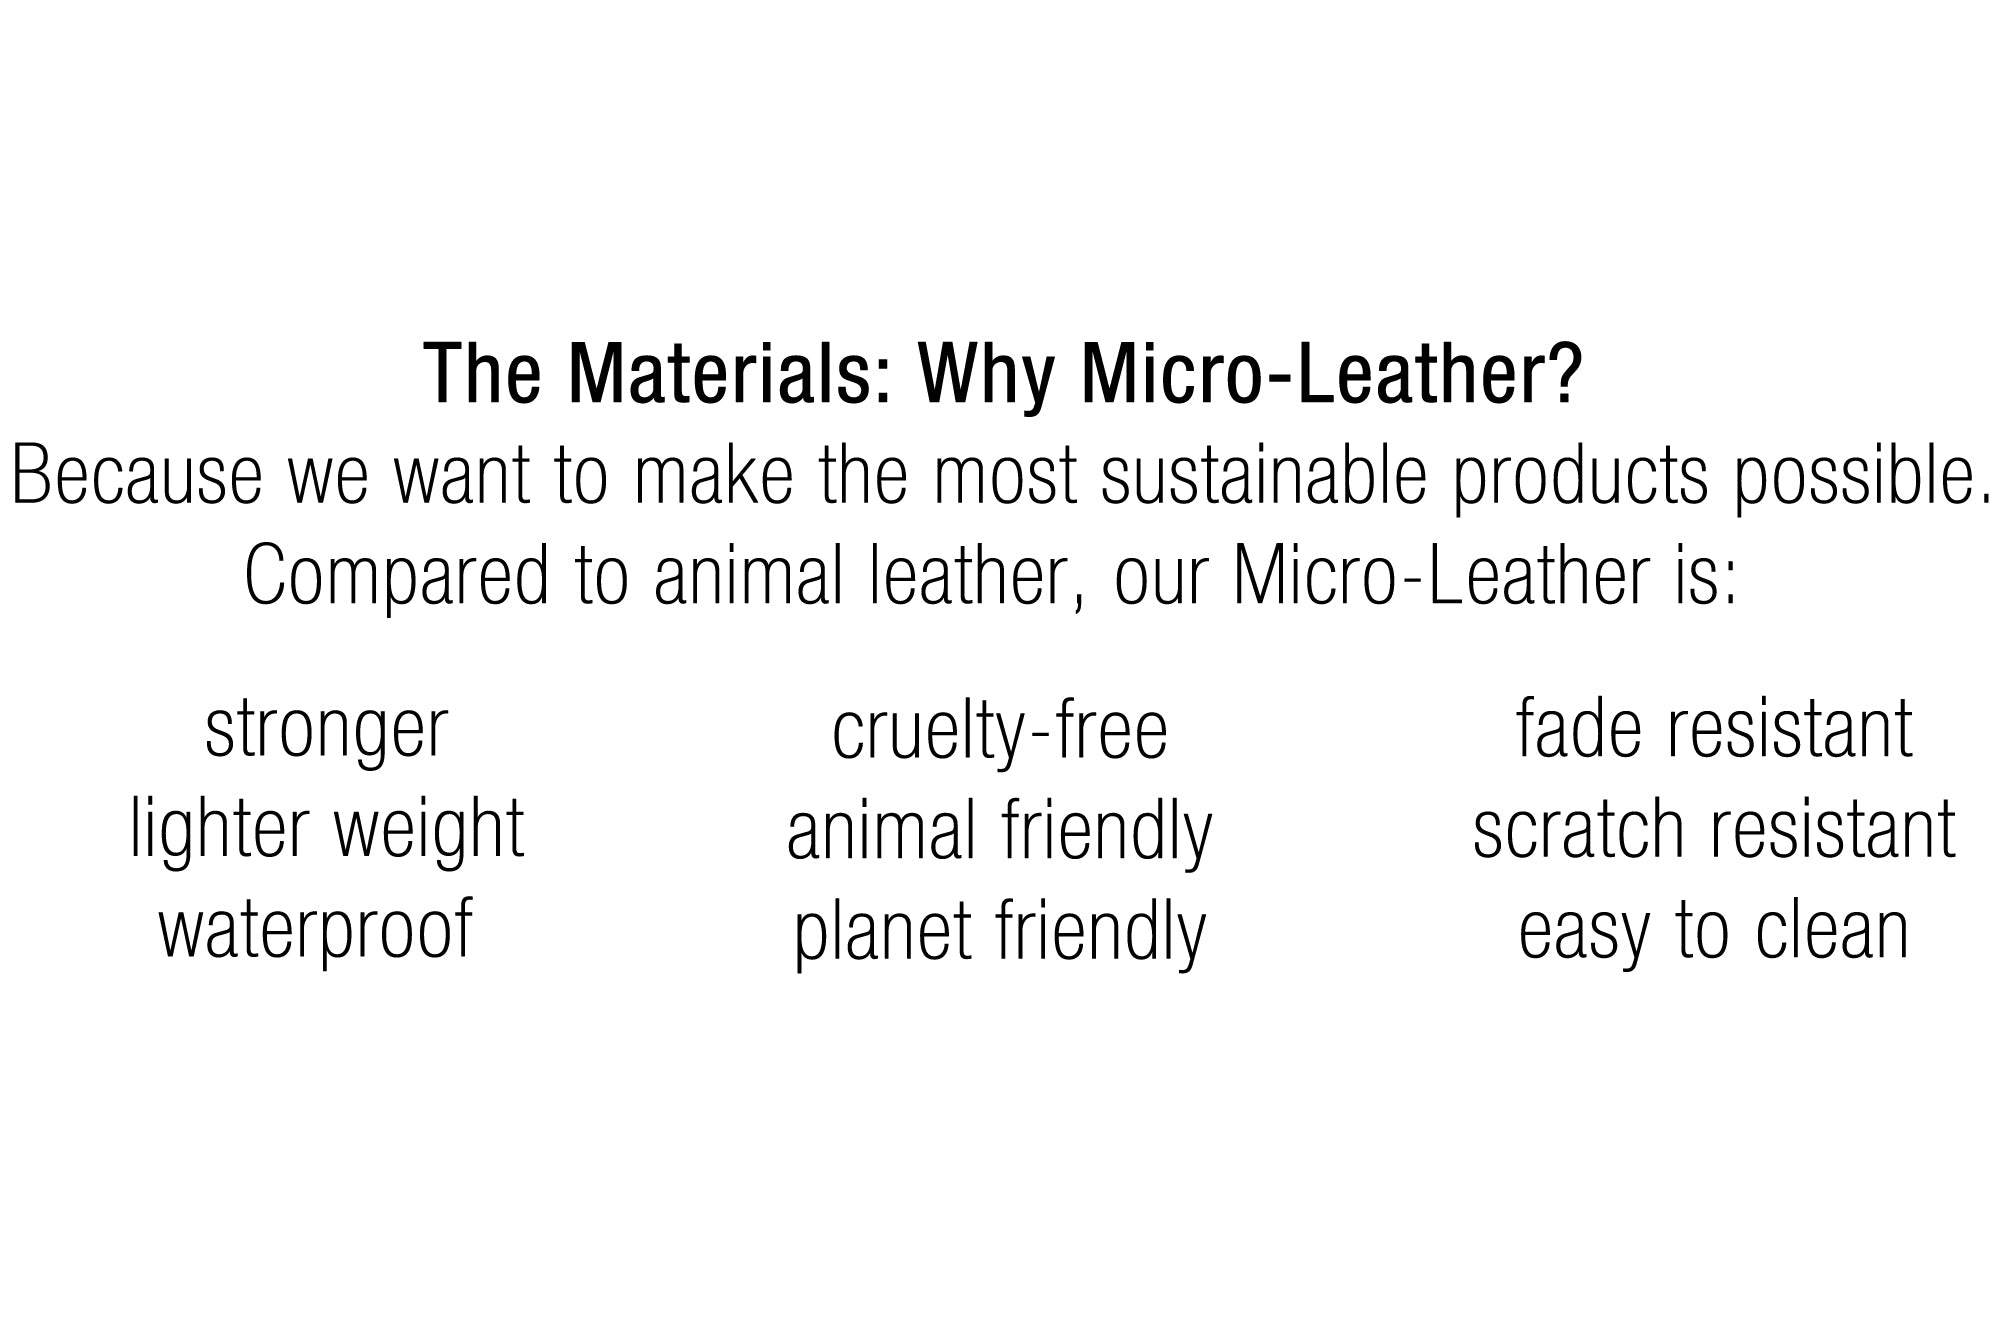 STERTHOUS - vegan leather | sustainable product design | made in USA